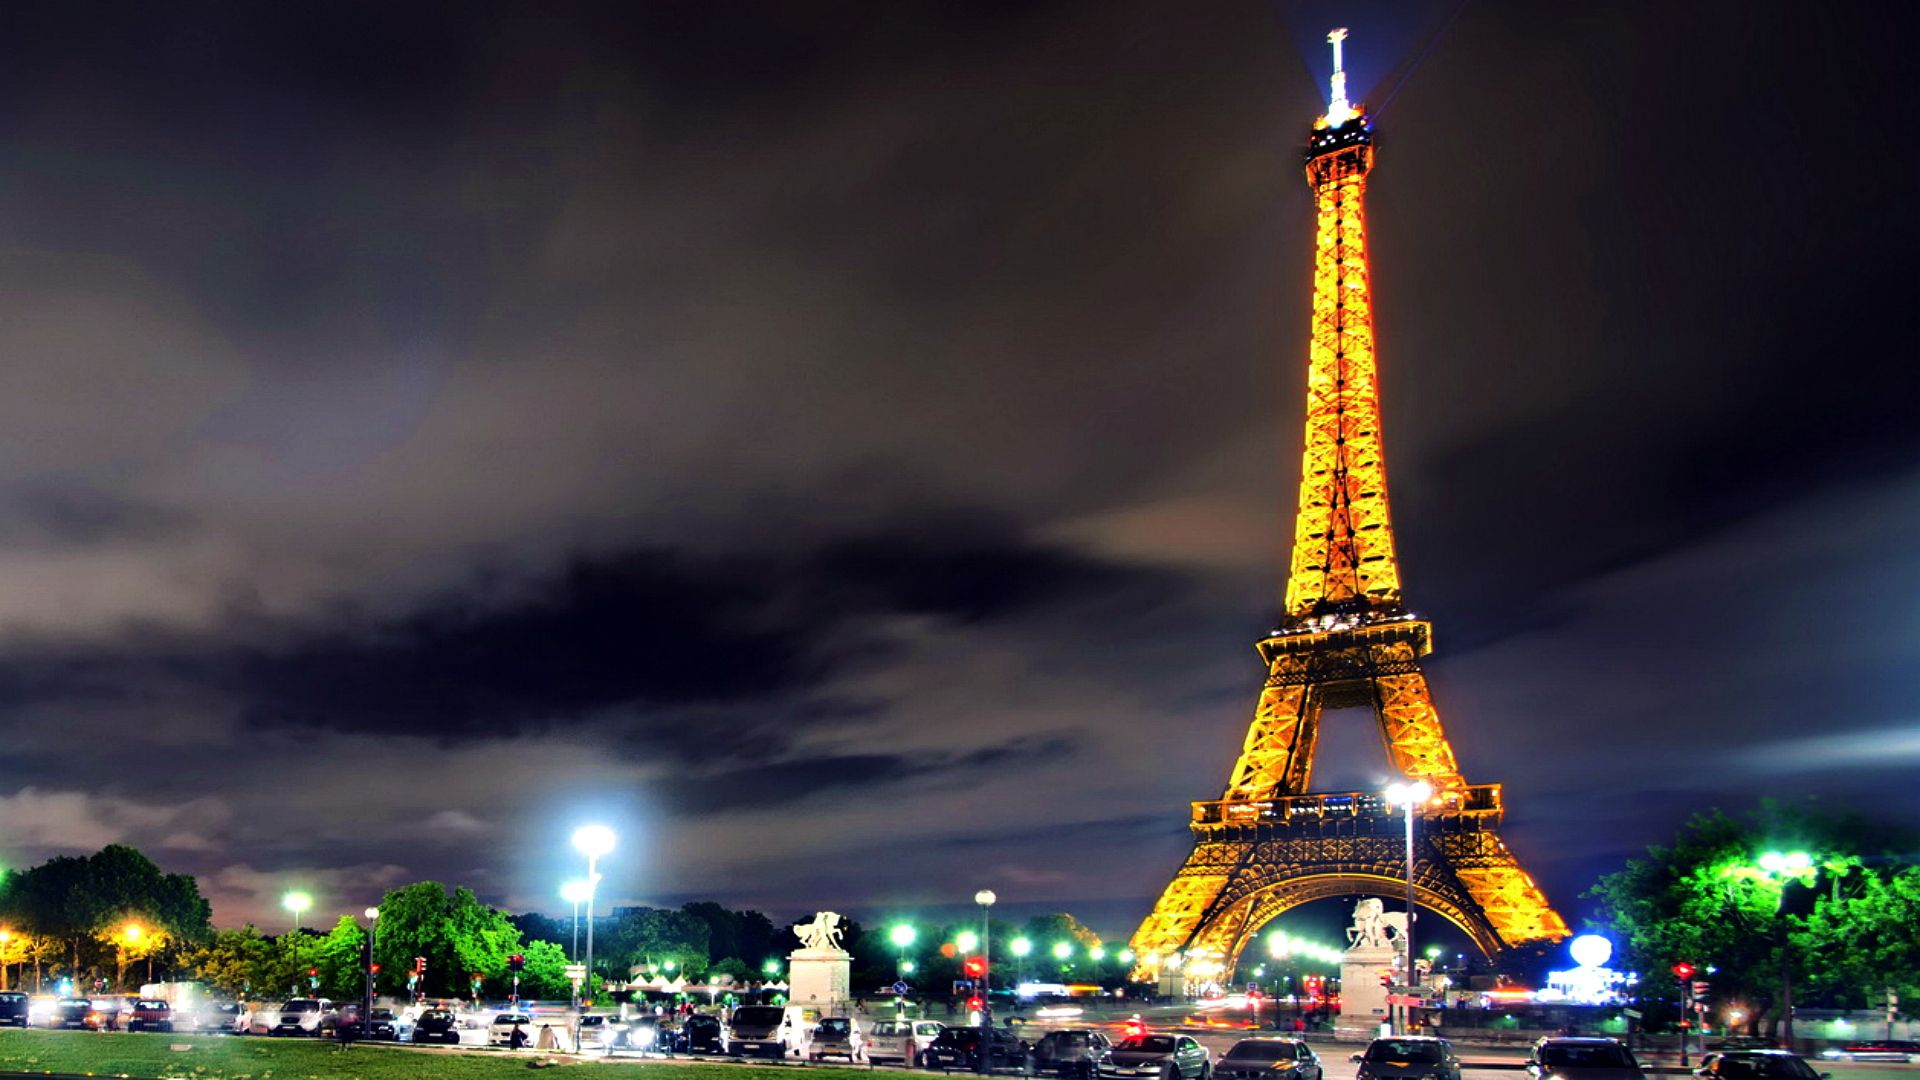 Eiffel Tower Paris The Capital Of Love 1920 X 1080 By Janipanila In Wallpaper Need Iphone 6s Plus Wallpaper Eiffel Tower At Night Eiffel Tower Eiffel